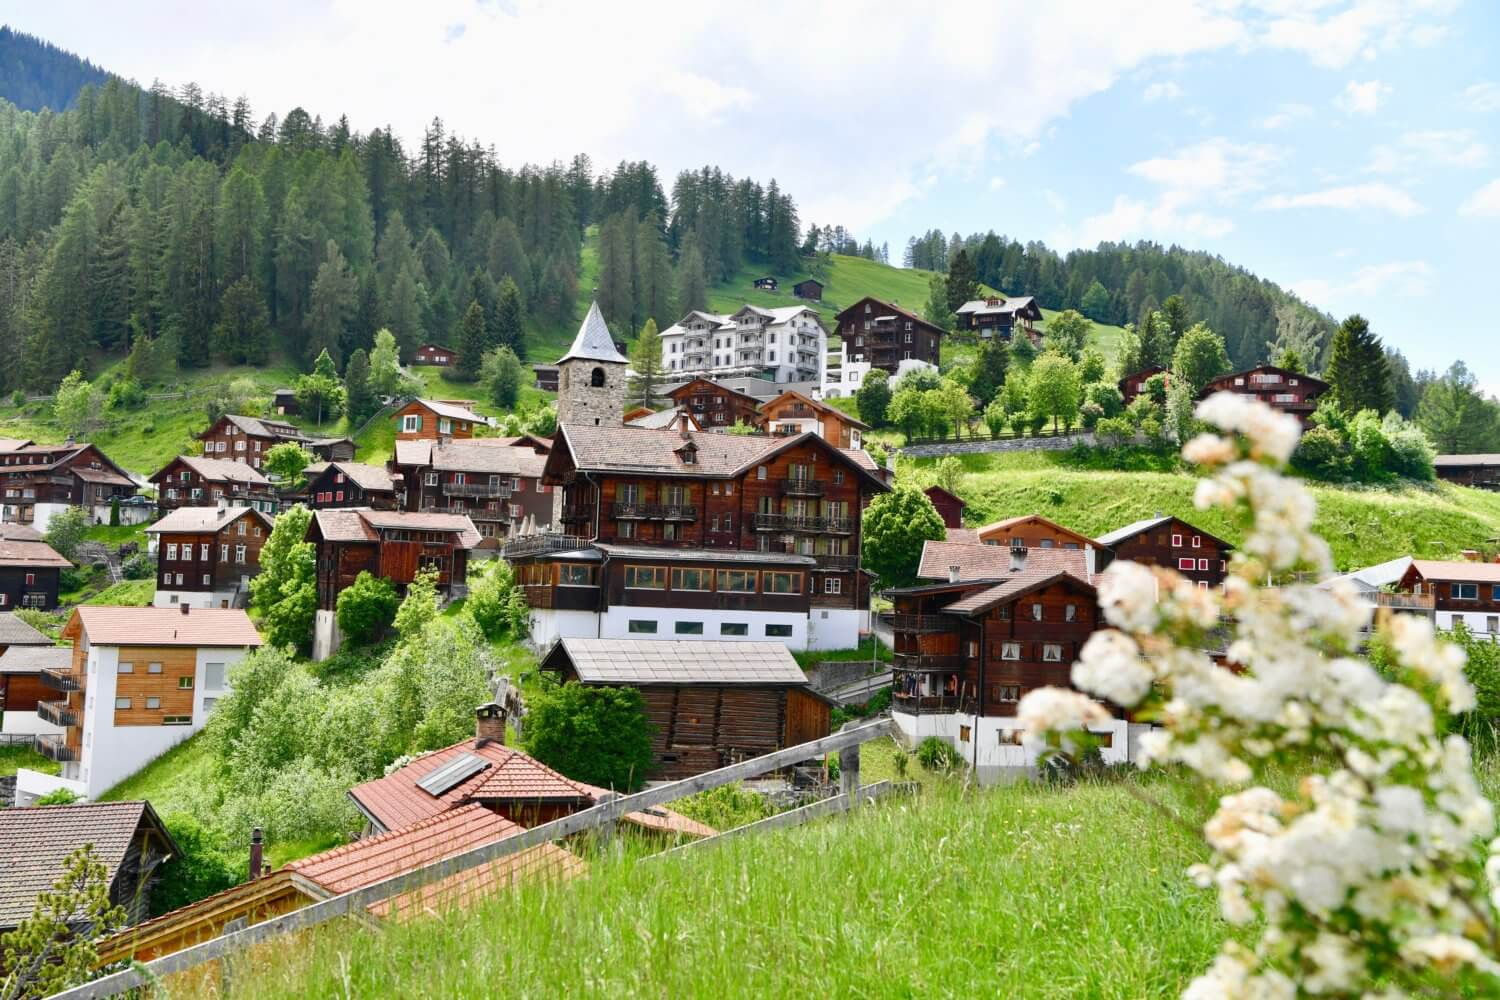 Going Back to the Roots in Luxury - Romantik Hotel Alpina Mountain Resort & Spa, Tschiertschen